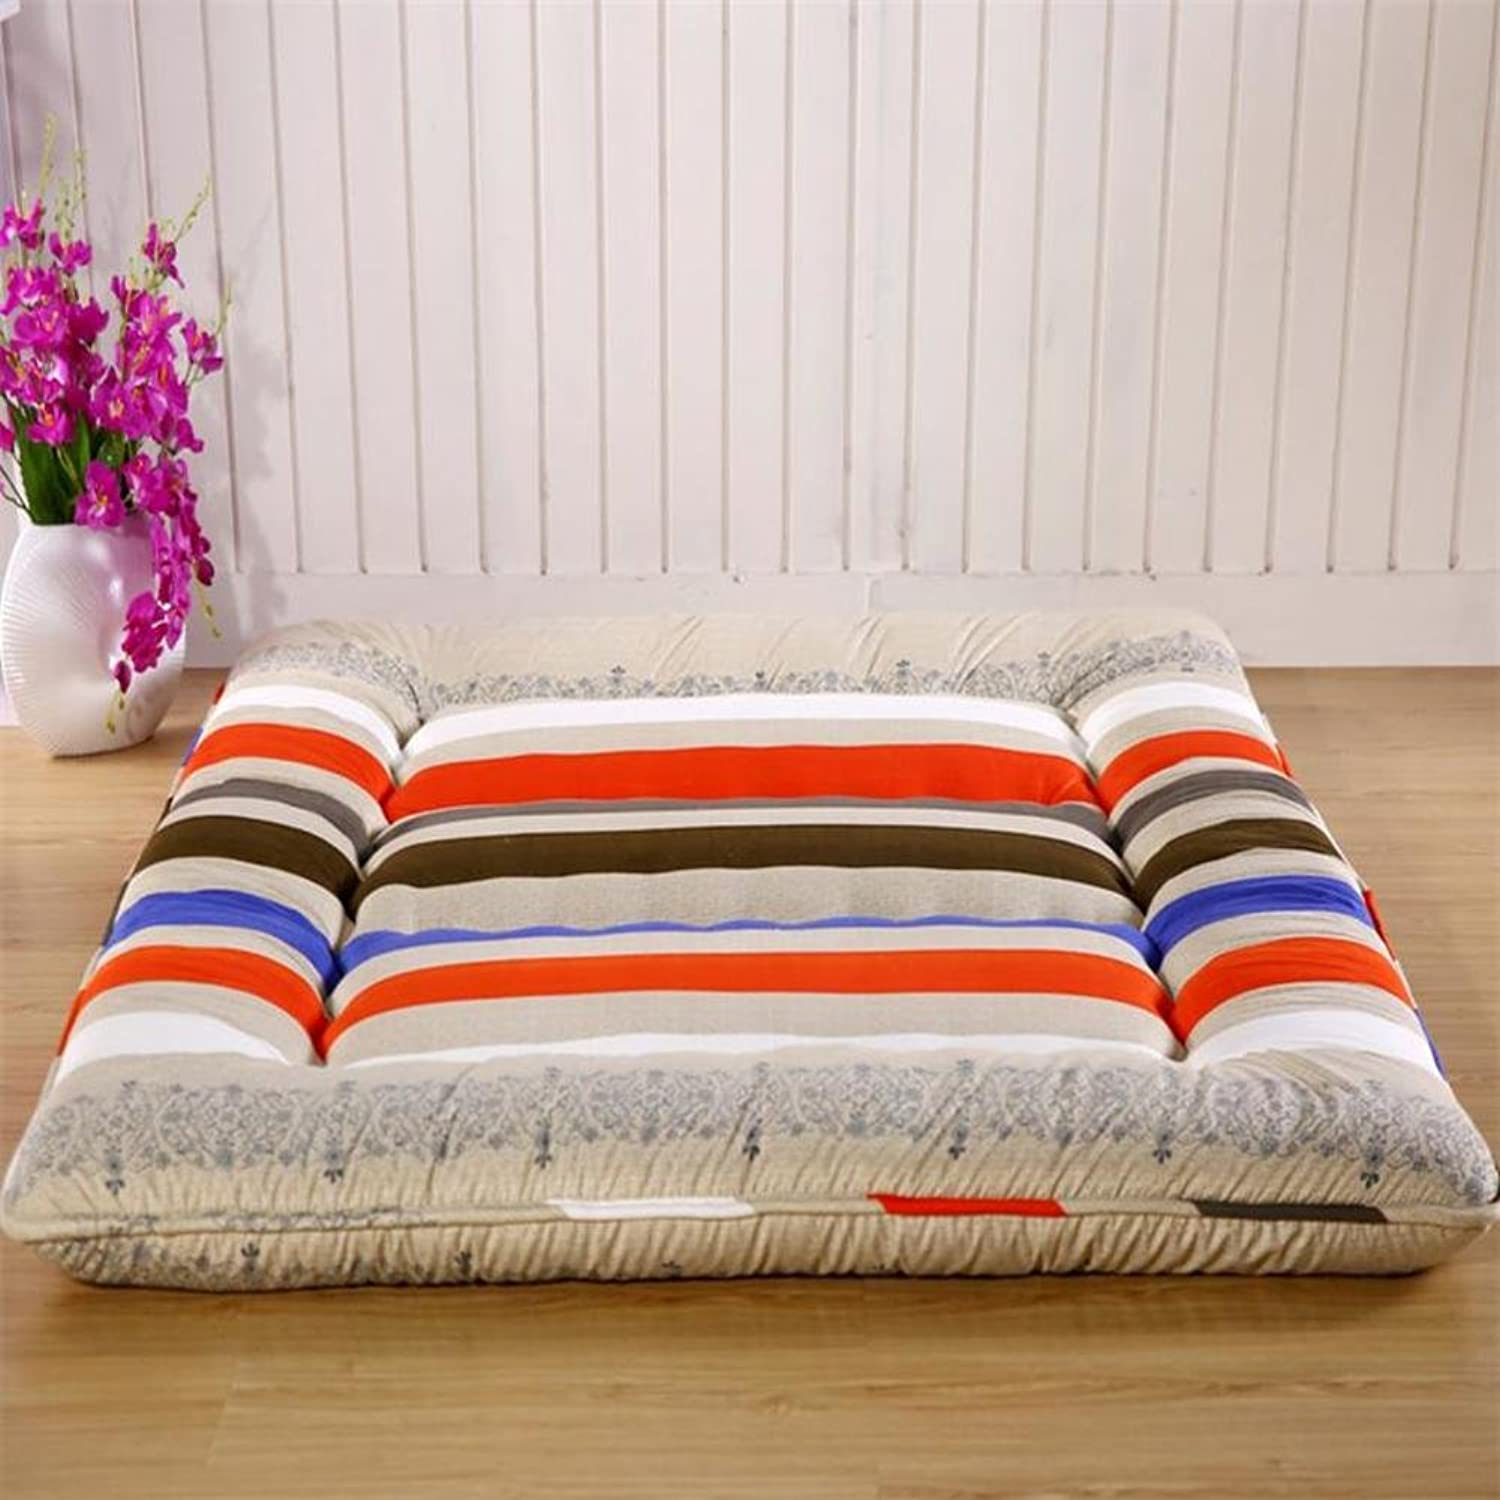 Thickened,Tatami,Mattress Single,Double,Student Dormitory,10cm Bed Cushion-H 100x200cm(39x79inch)